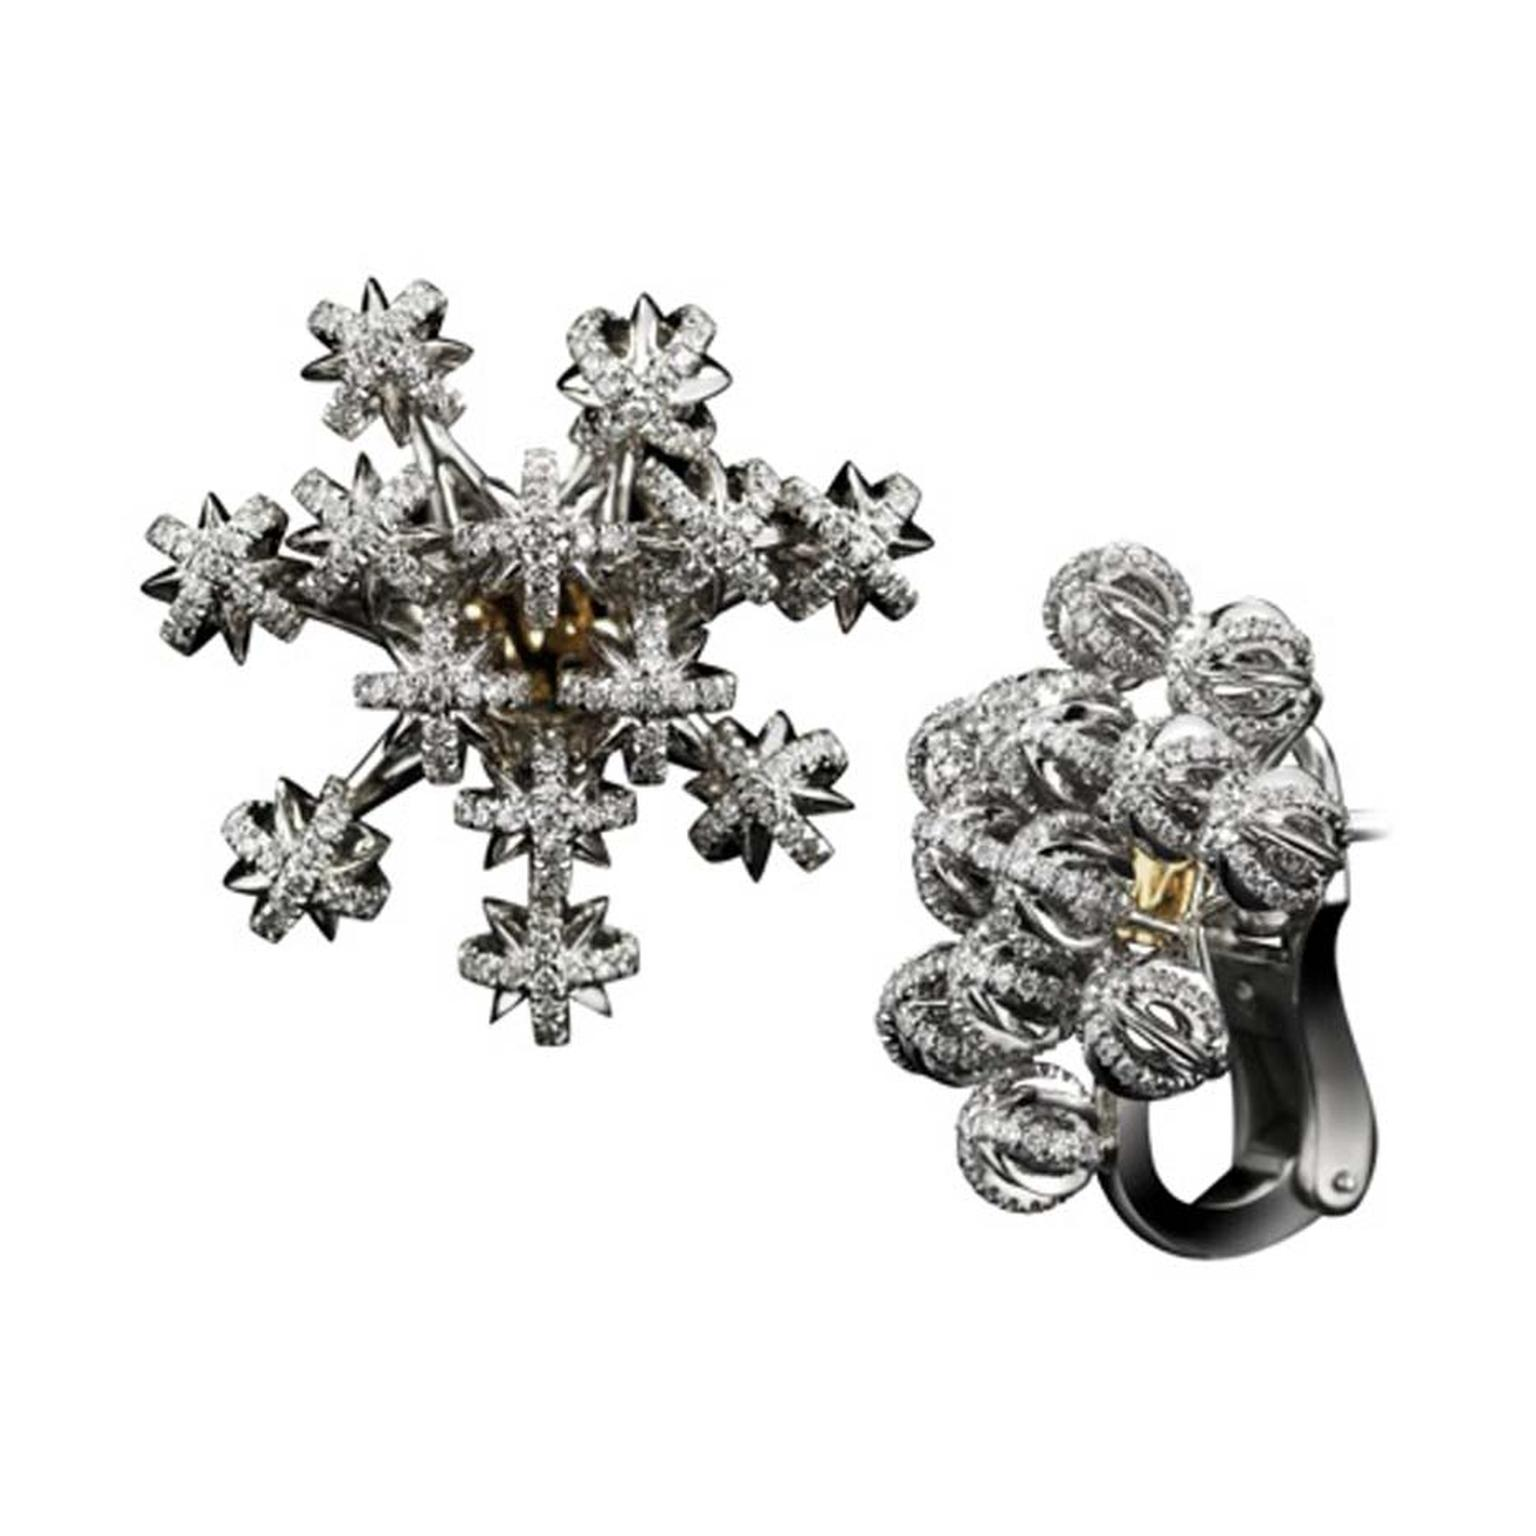 Alexandra Mor Dome Snowflake charms earrings featuring diamonds set in white and black gold.